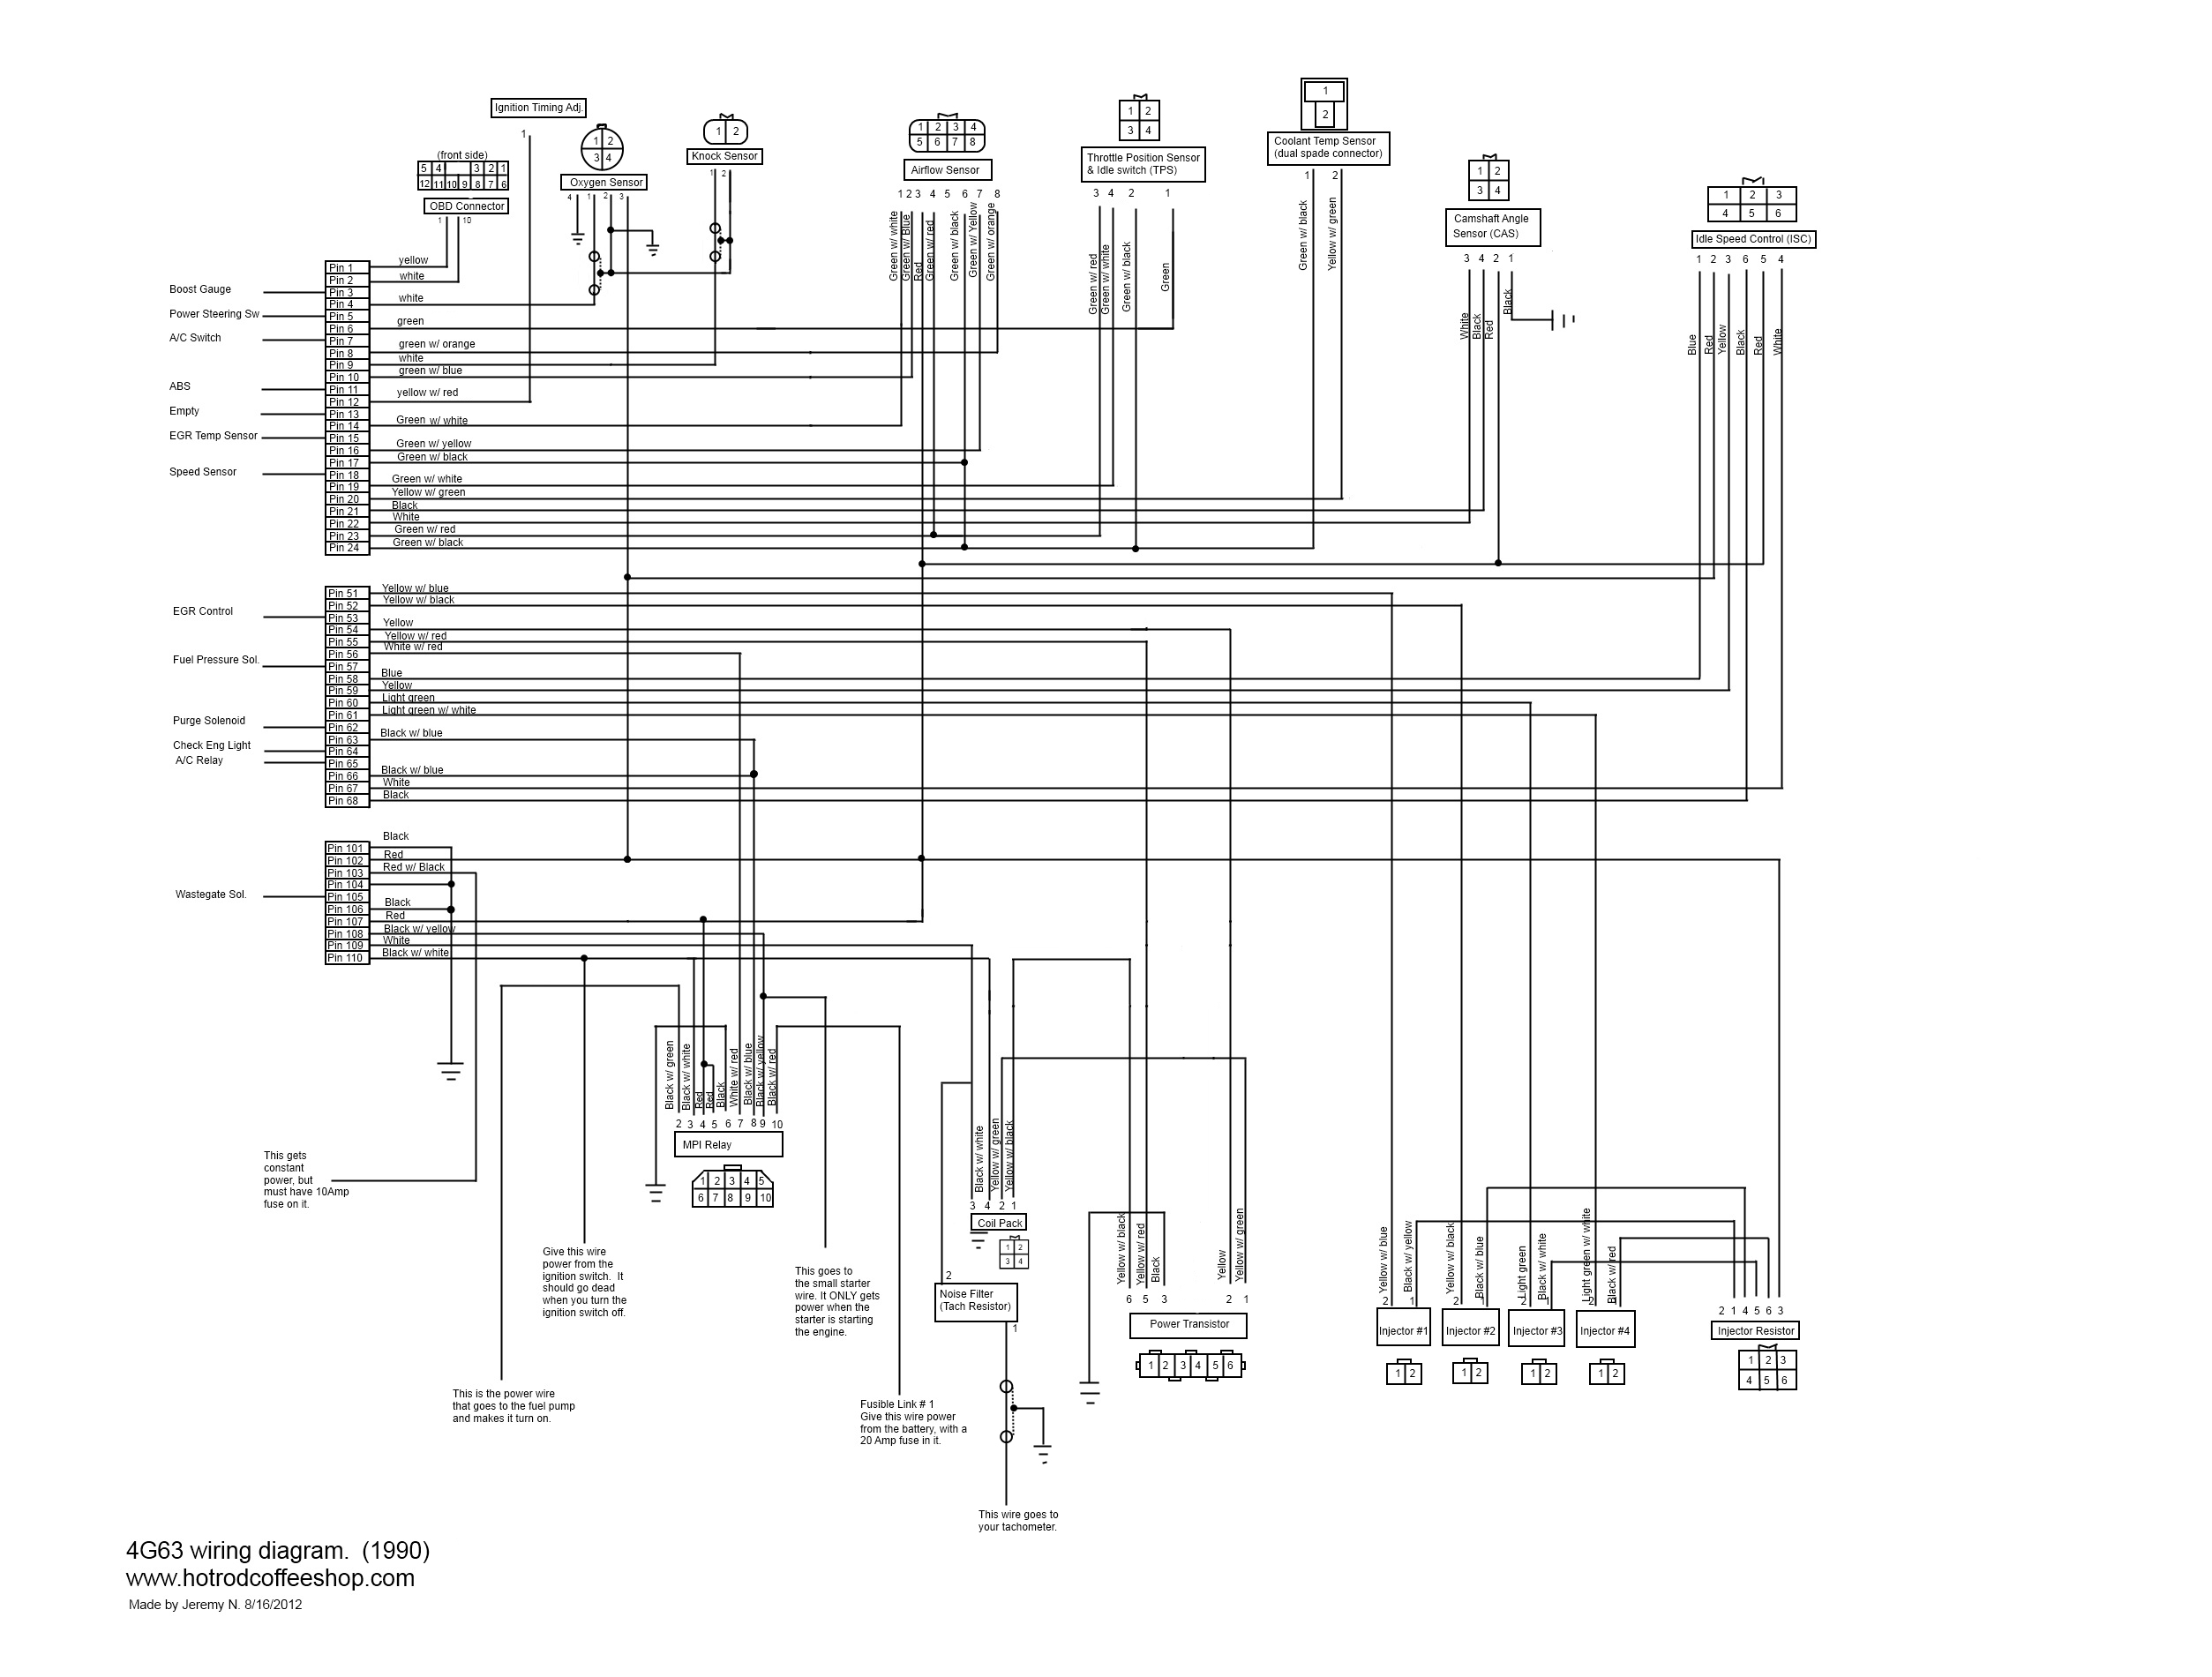 1988 Dodge 318 Engine Diagram, 1988, Free Engine Image For